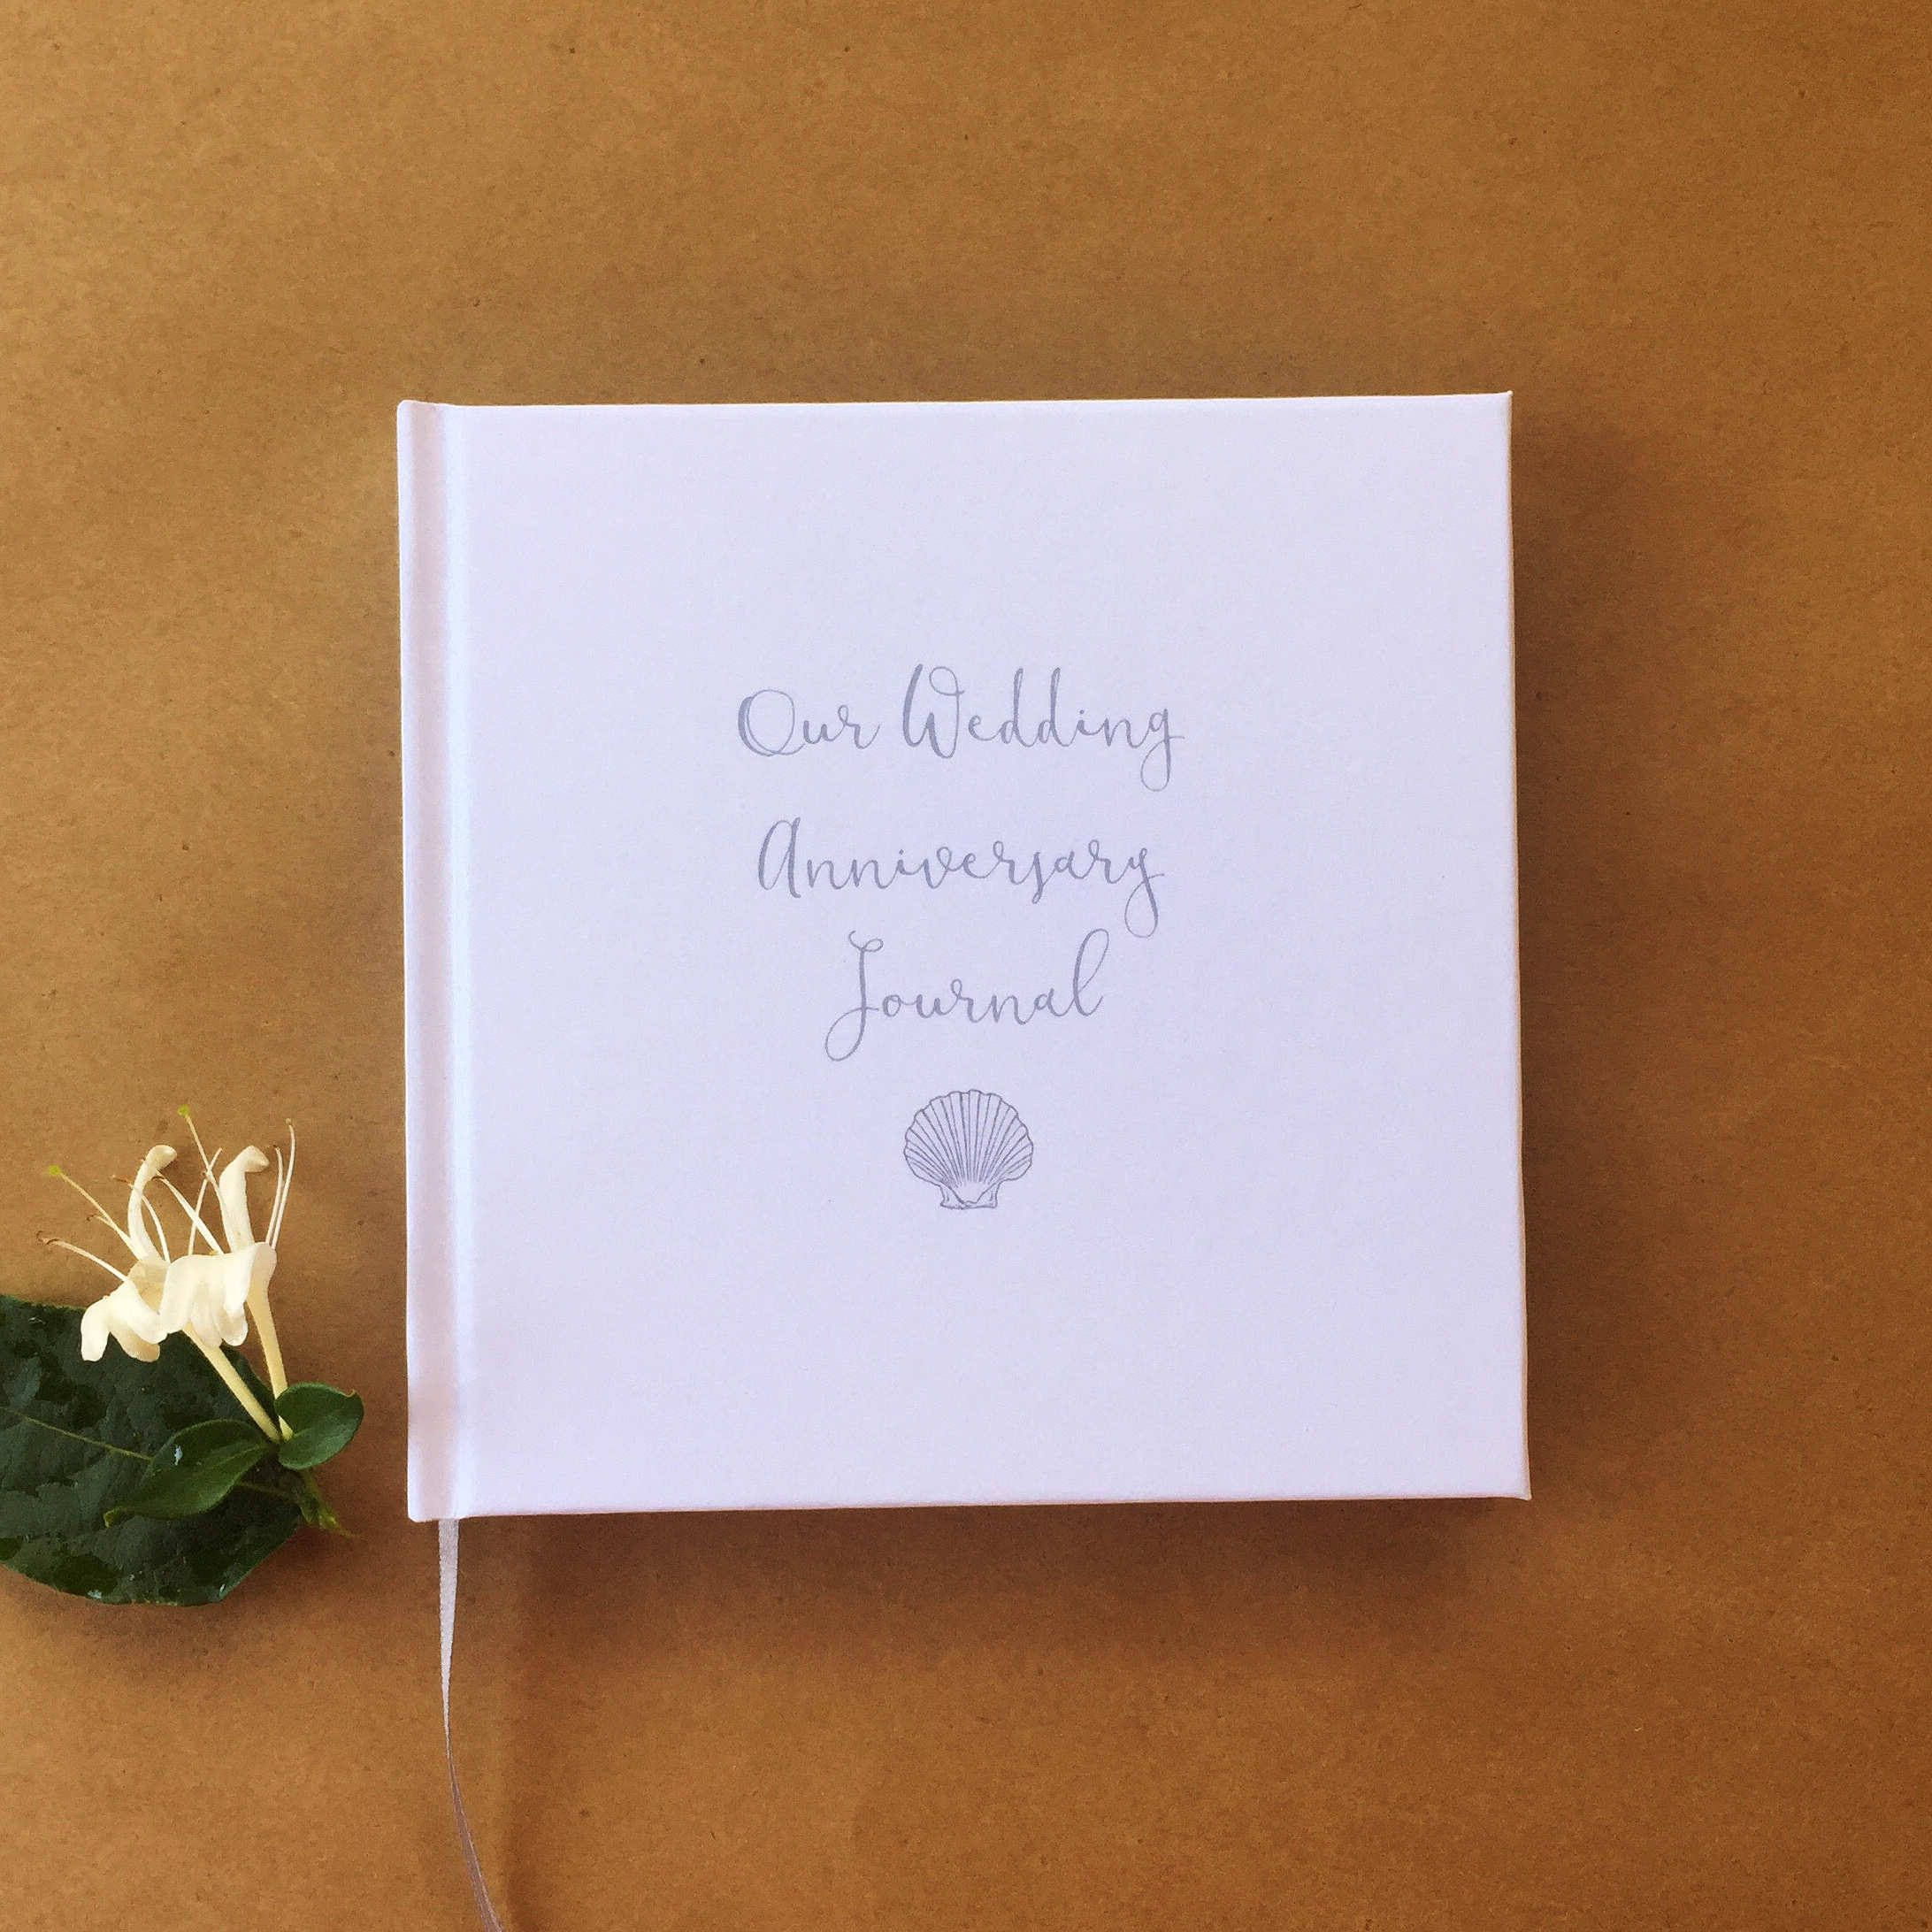 Our First Wedding Anniversary Journal · First Anniversary Gift · Wedding Anniversary Diary Keepsake · Paper Ersten HochzeitstagPapier Jubiläum Geschenk